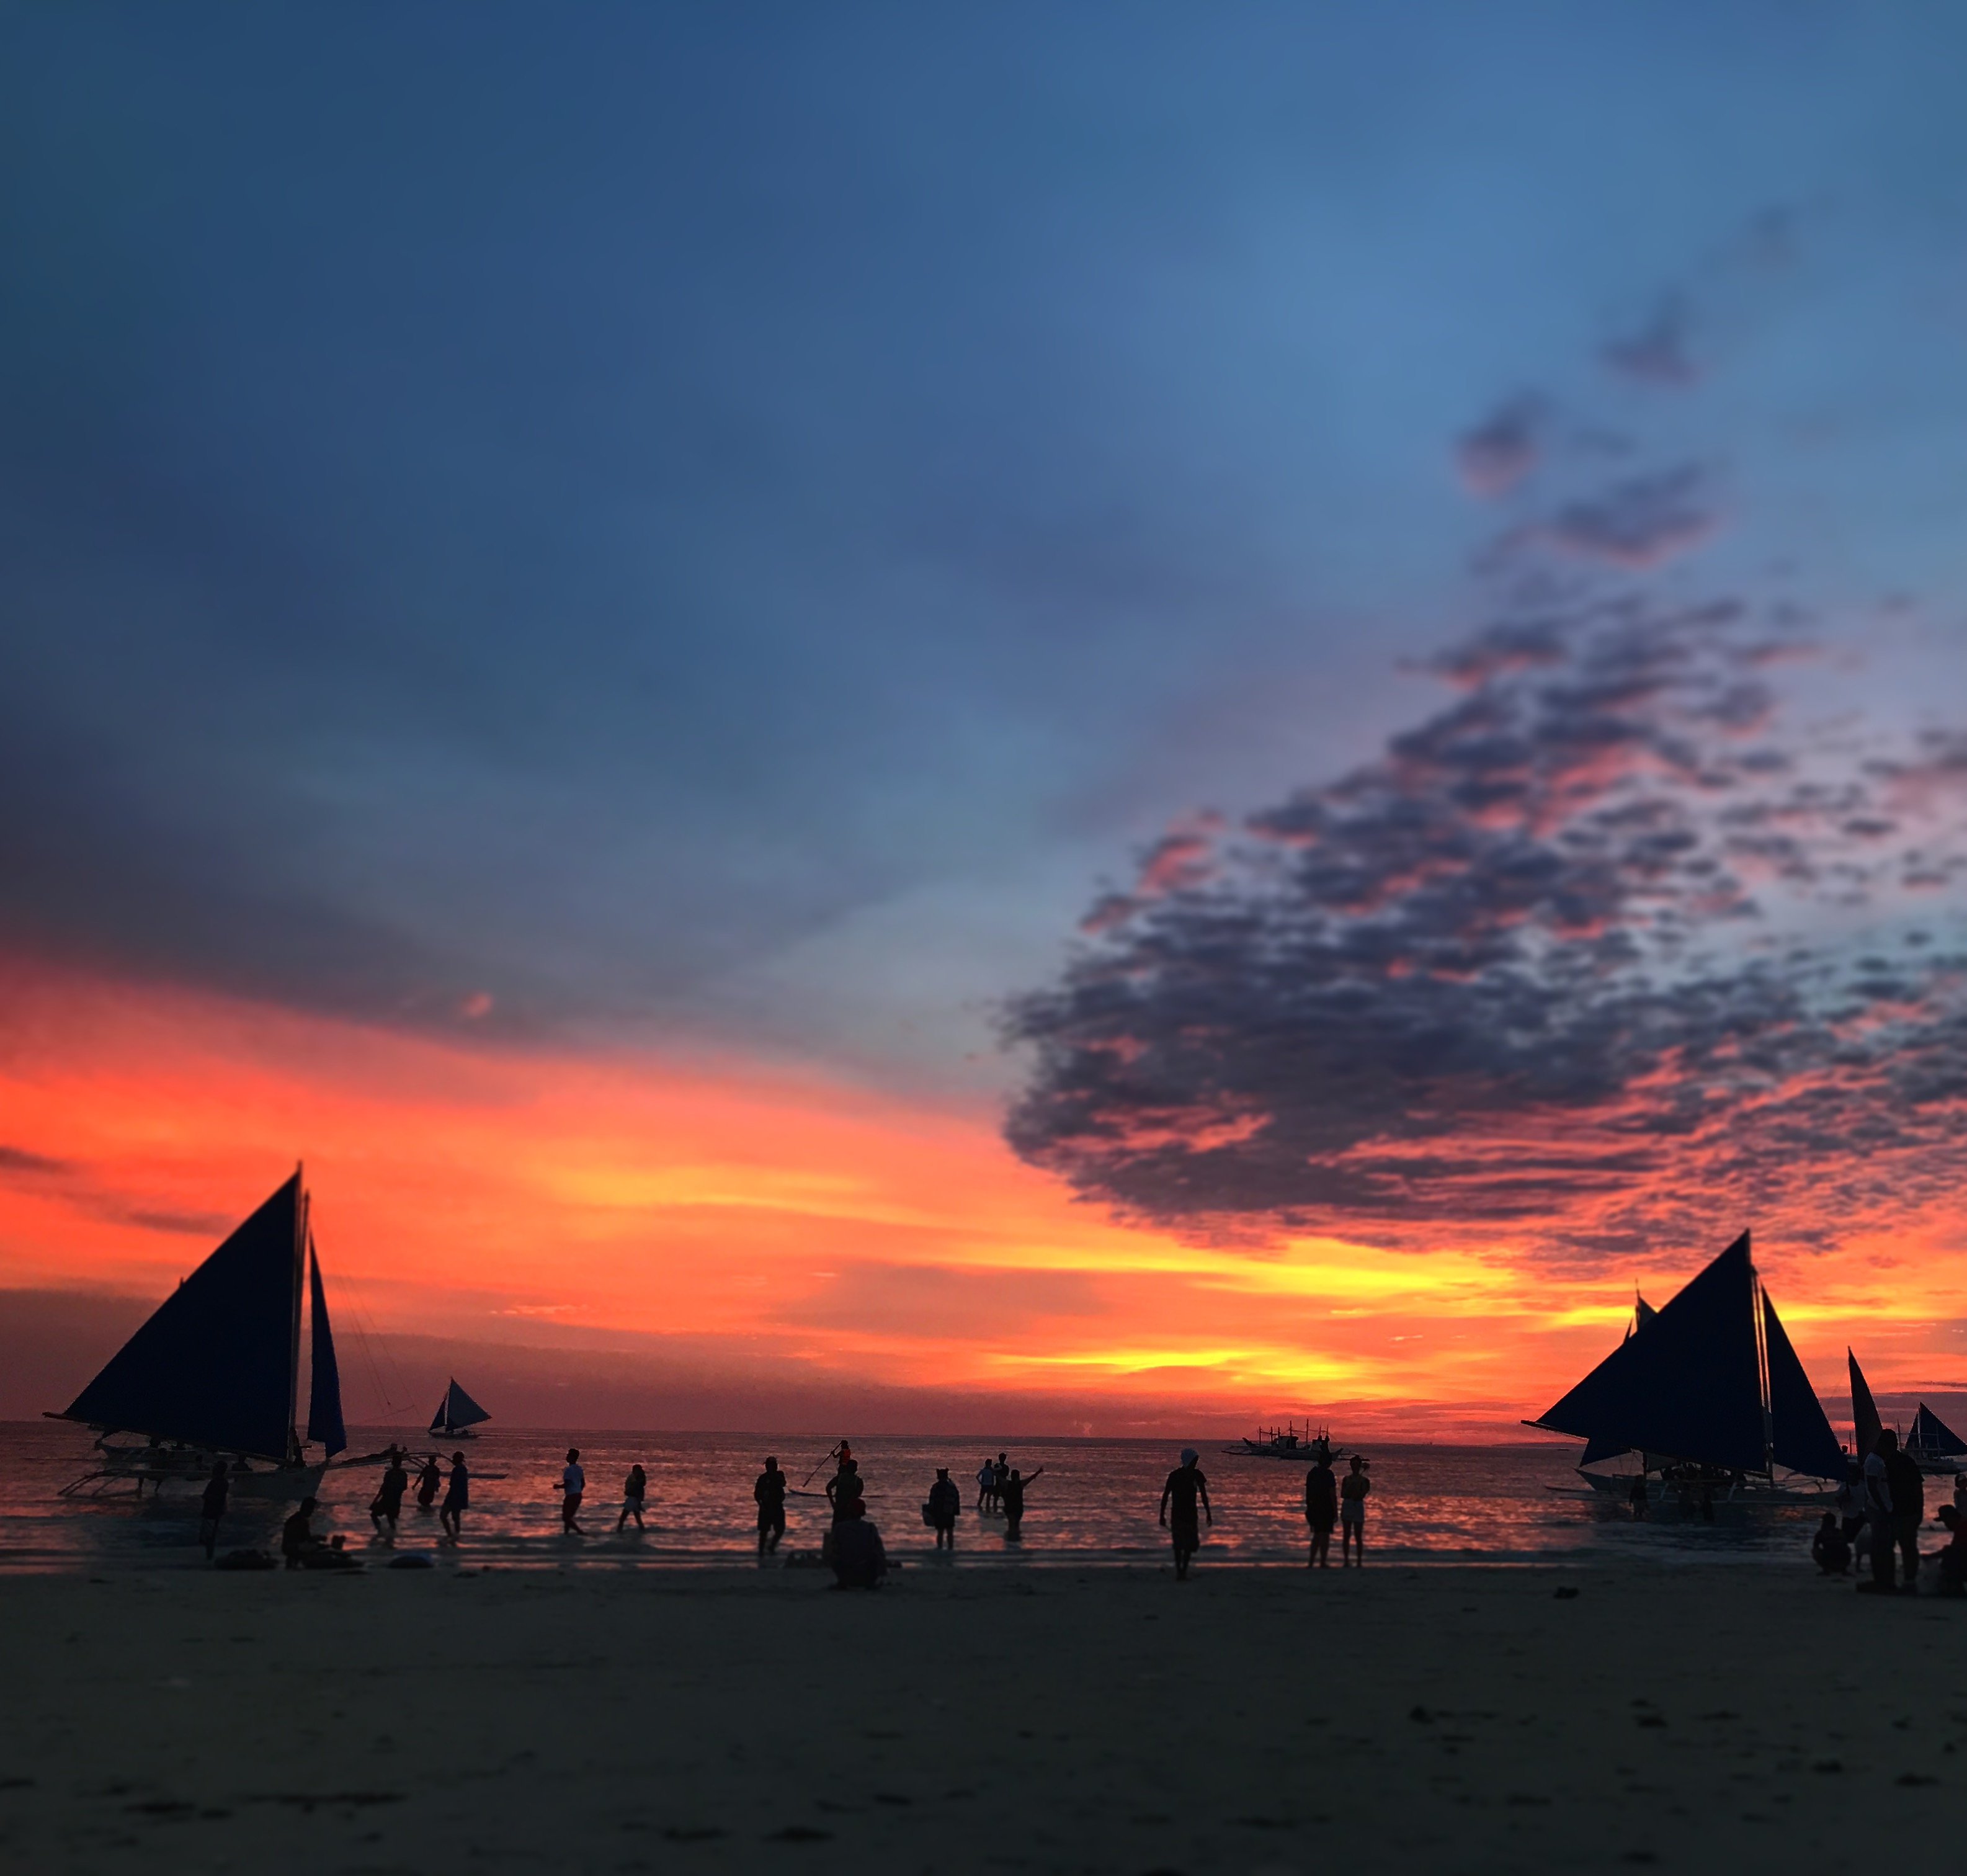 Final Sunset in the Philippines